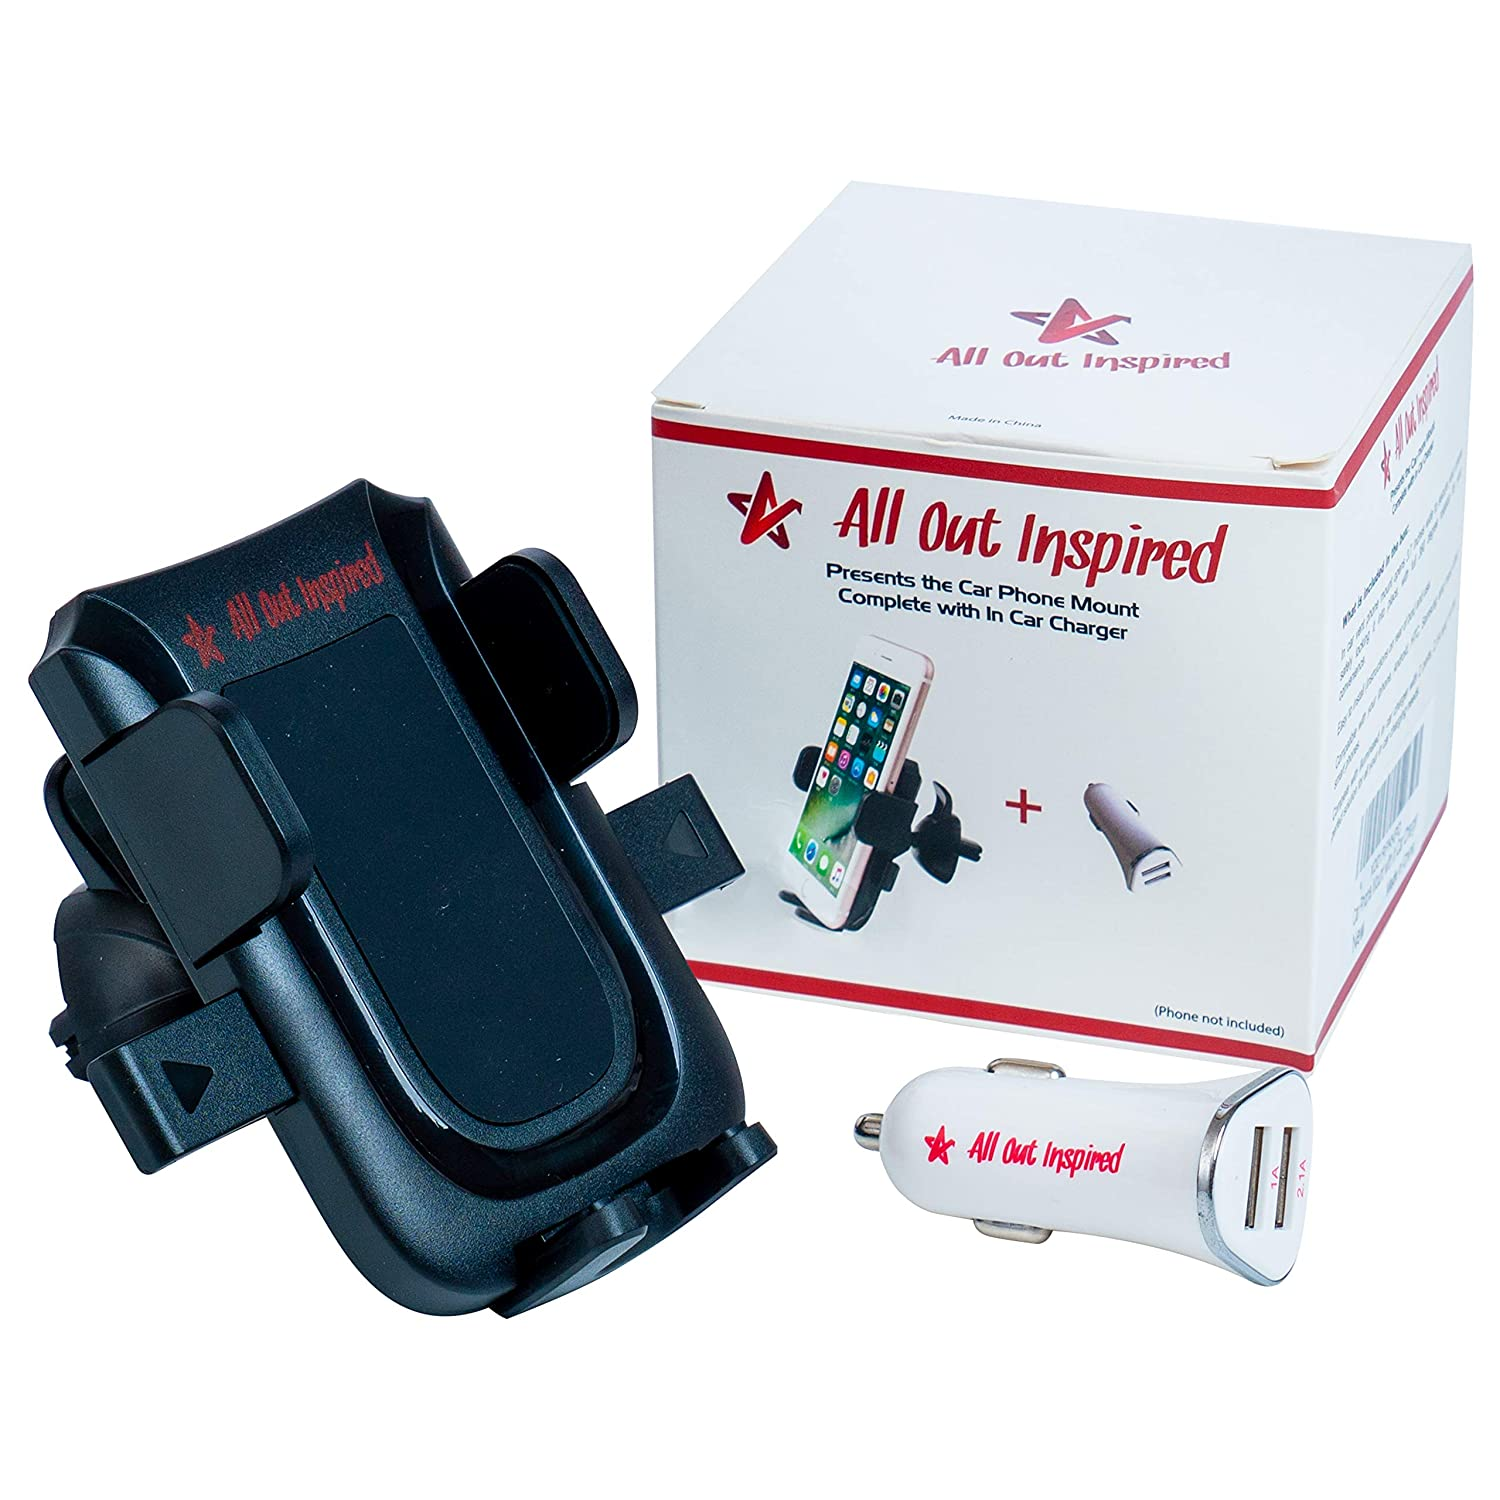 All Out Inspired Phone Mount Holder with 3.1A Dual Port in Car Charger Samsung and Smartphone Upto 3.5 Inches Wide Lightweight Best Hands Free Solution Suitable for Your iPhone Sleek 4344271283 Sturdy